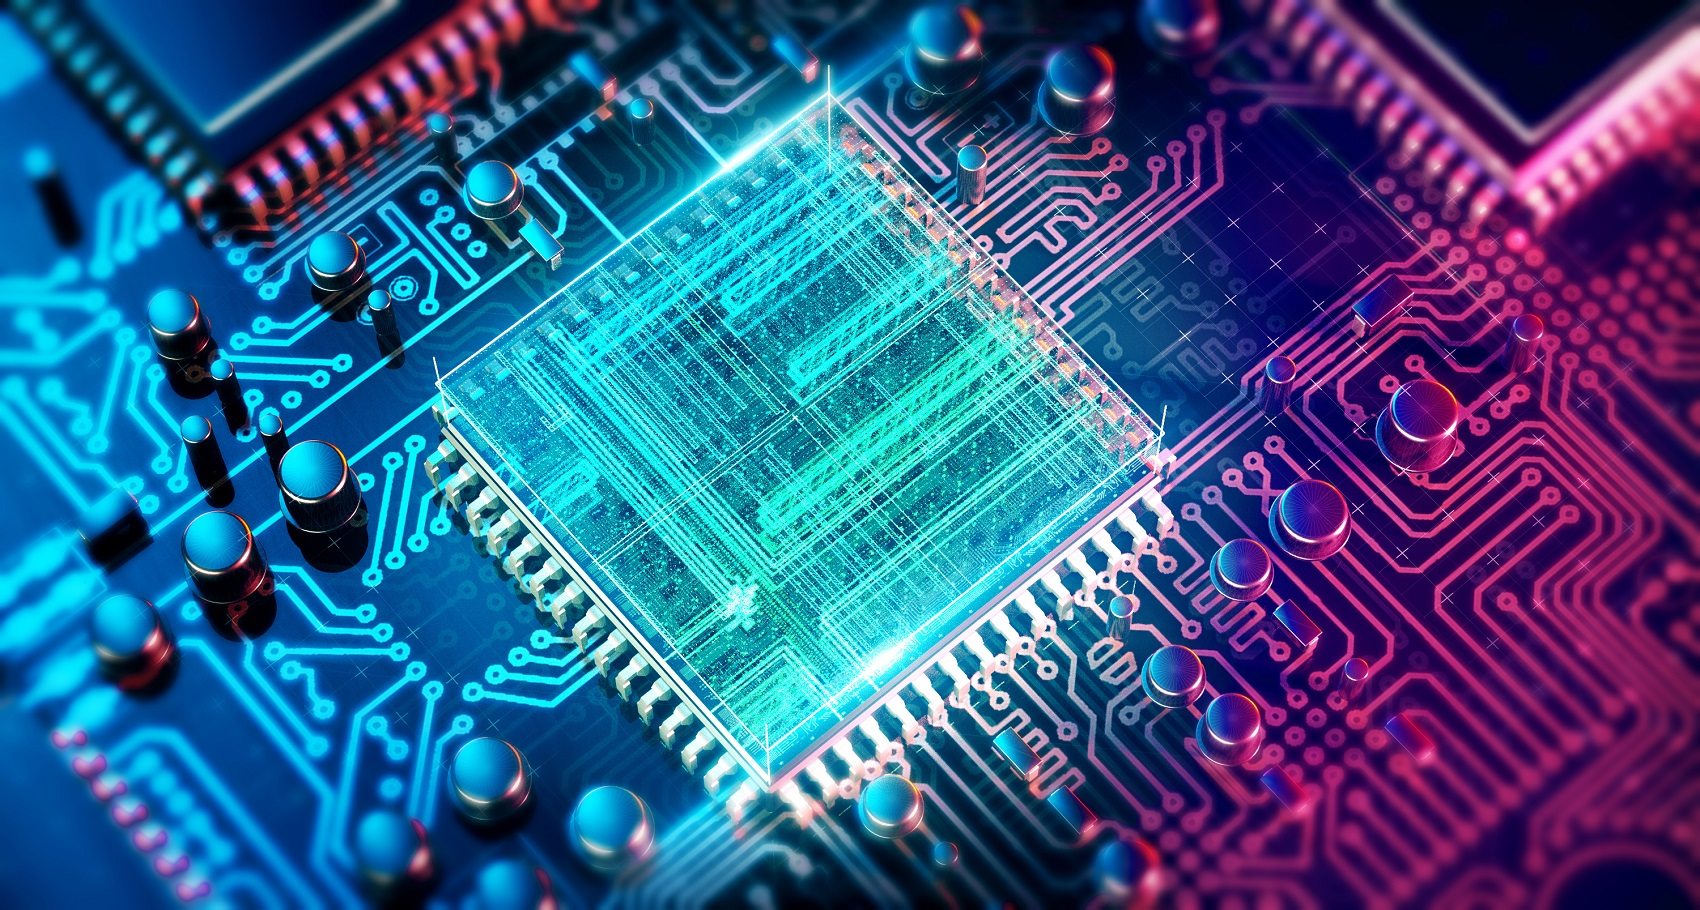 the future of technology through the quantum computer